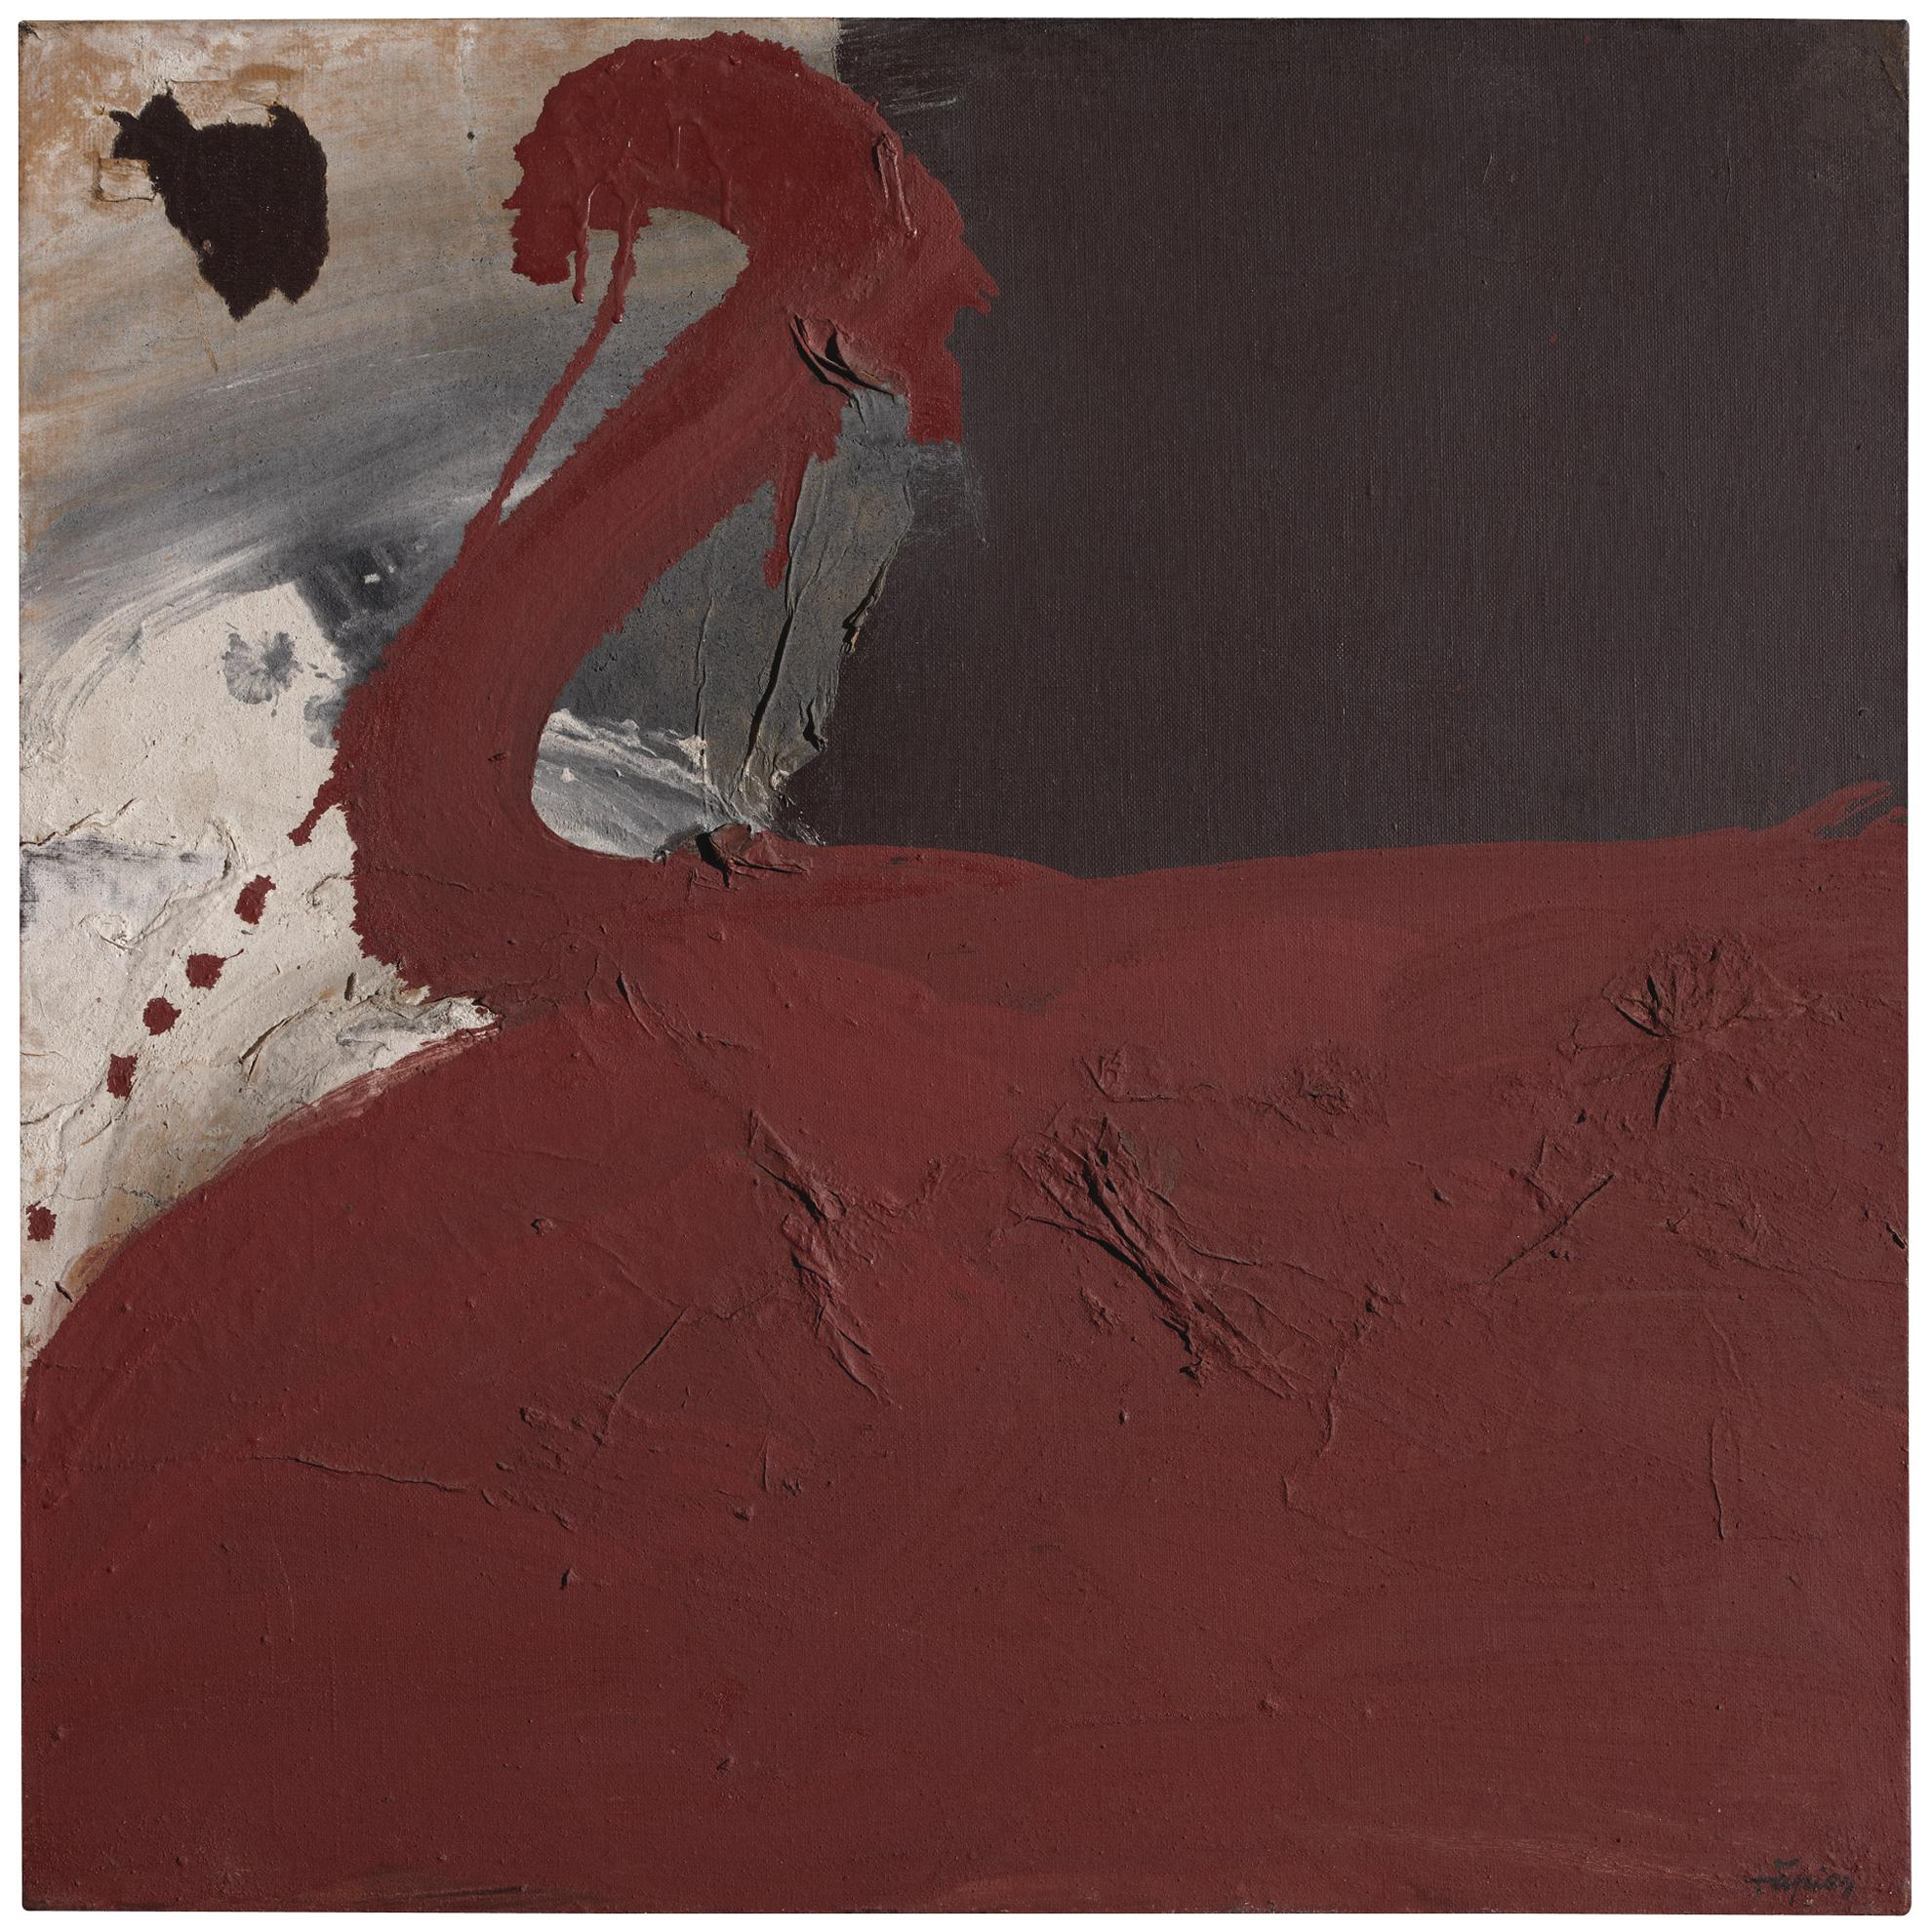 Antoni Tapies-Pintura-Collage Oxid Vermell (Rusty Red Painting-Collage)-1960